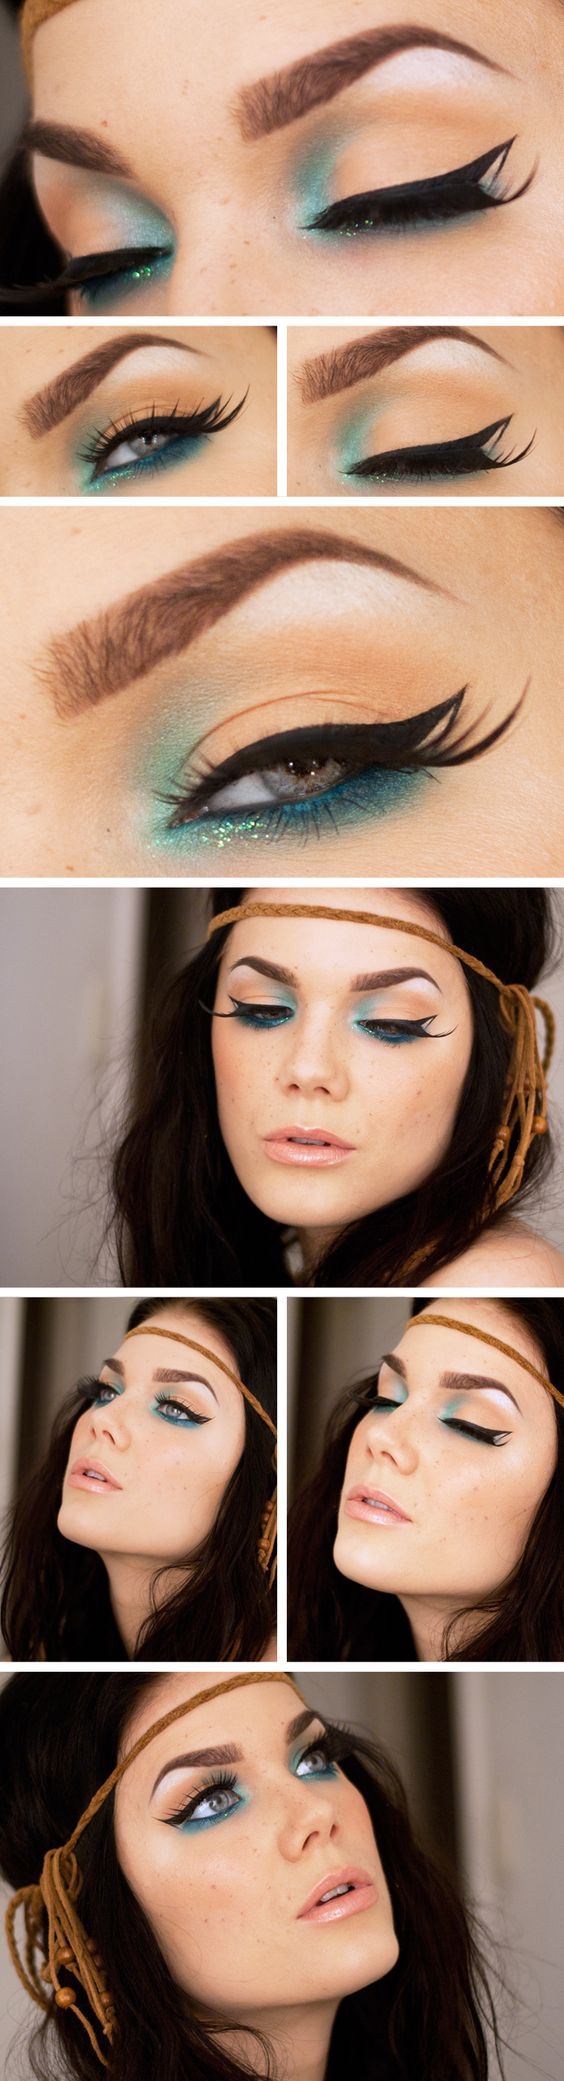 Latest Summer Makeup Ideas & Beauty Tips Cool Looks 2016-2017 (32)